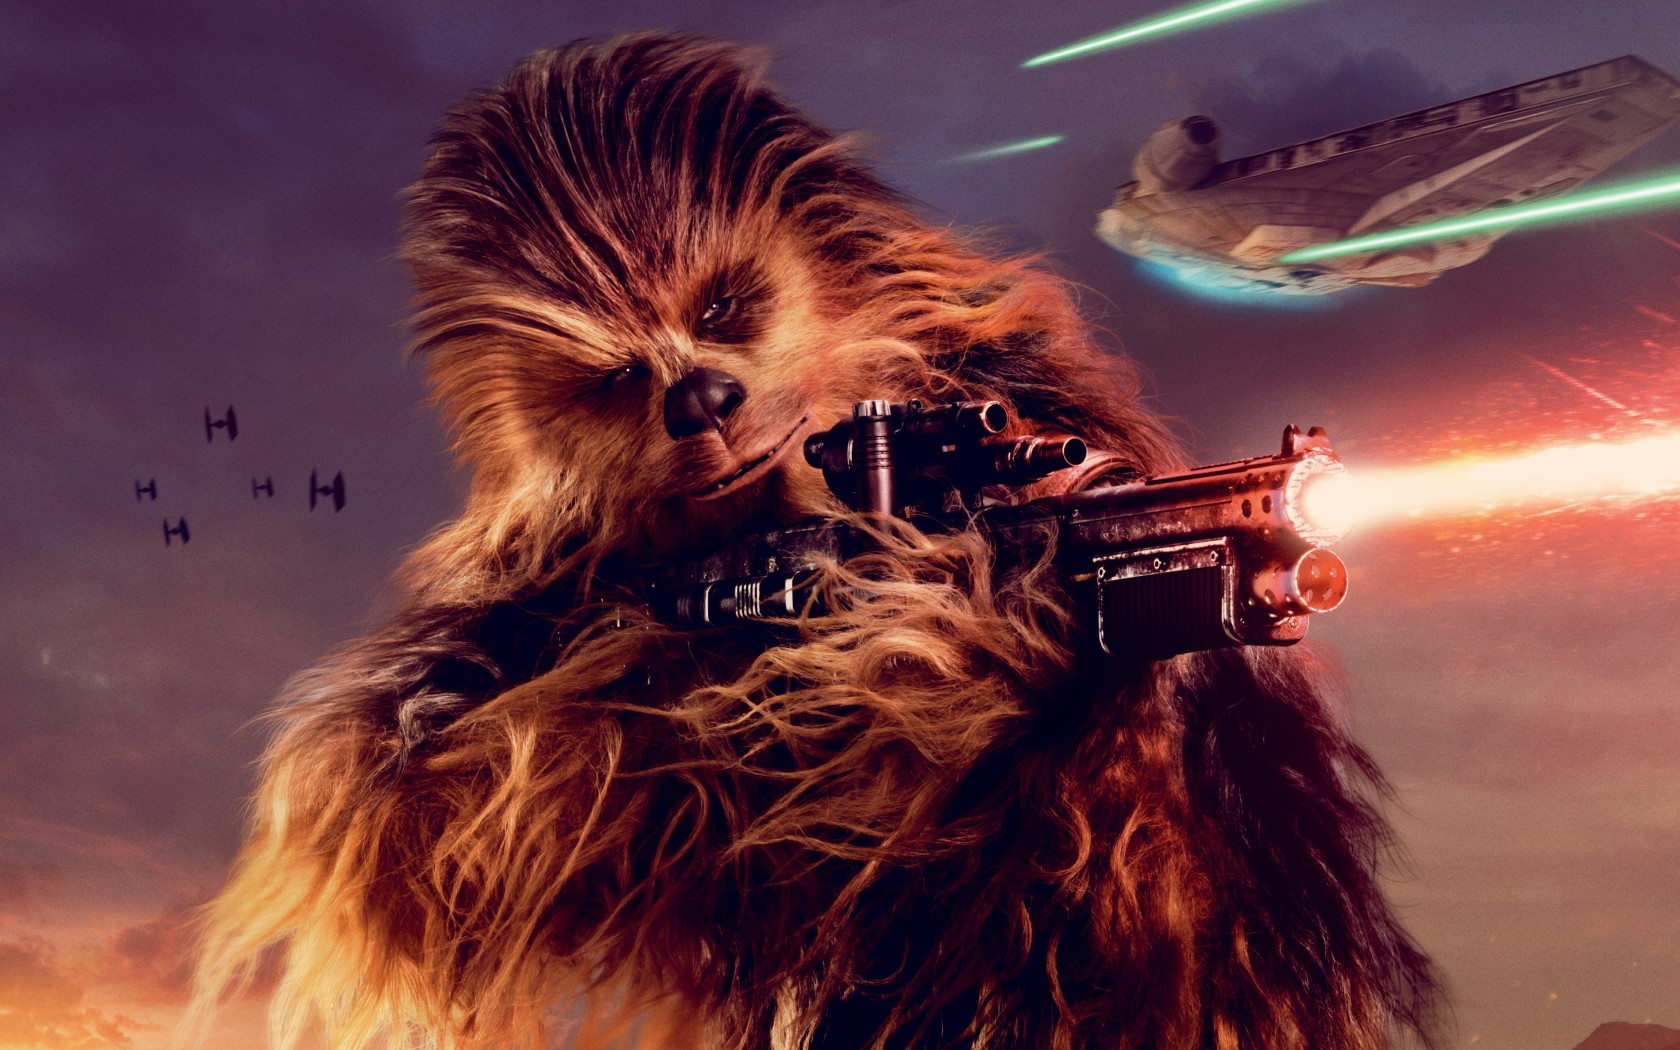 How To Download Wallpaper For Iphone 6 Chewbacca Solo A Star Wars Story 4k Wallpapers Hd